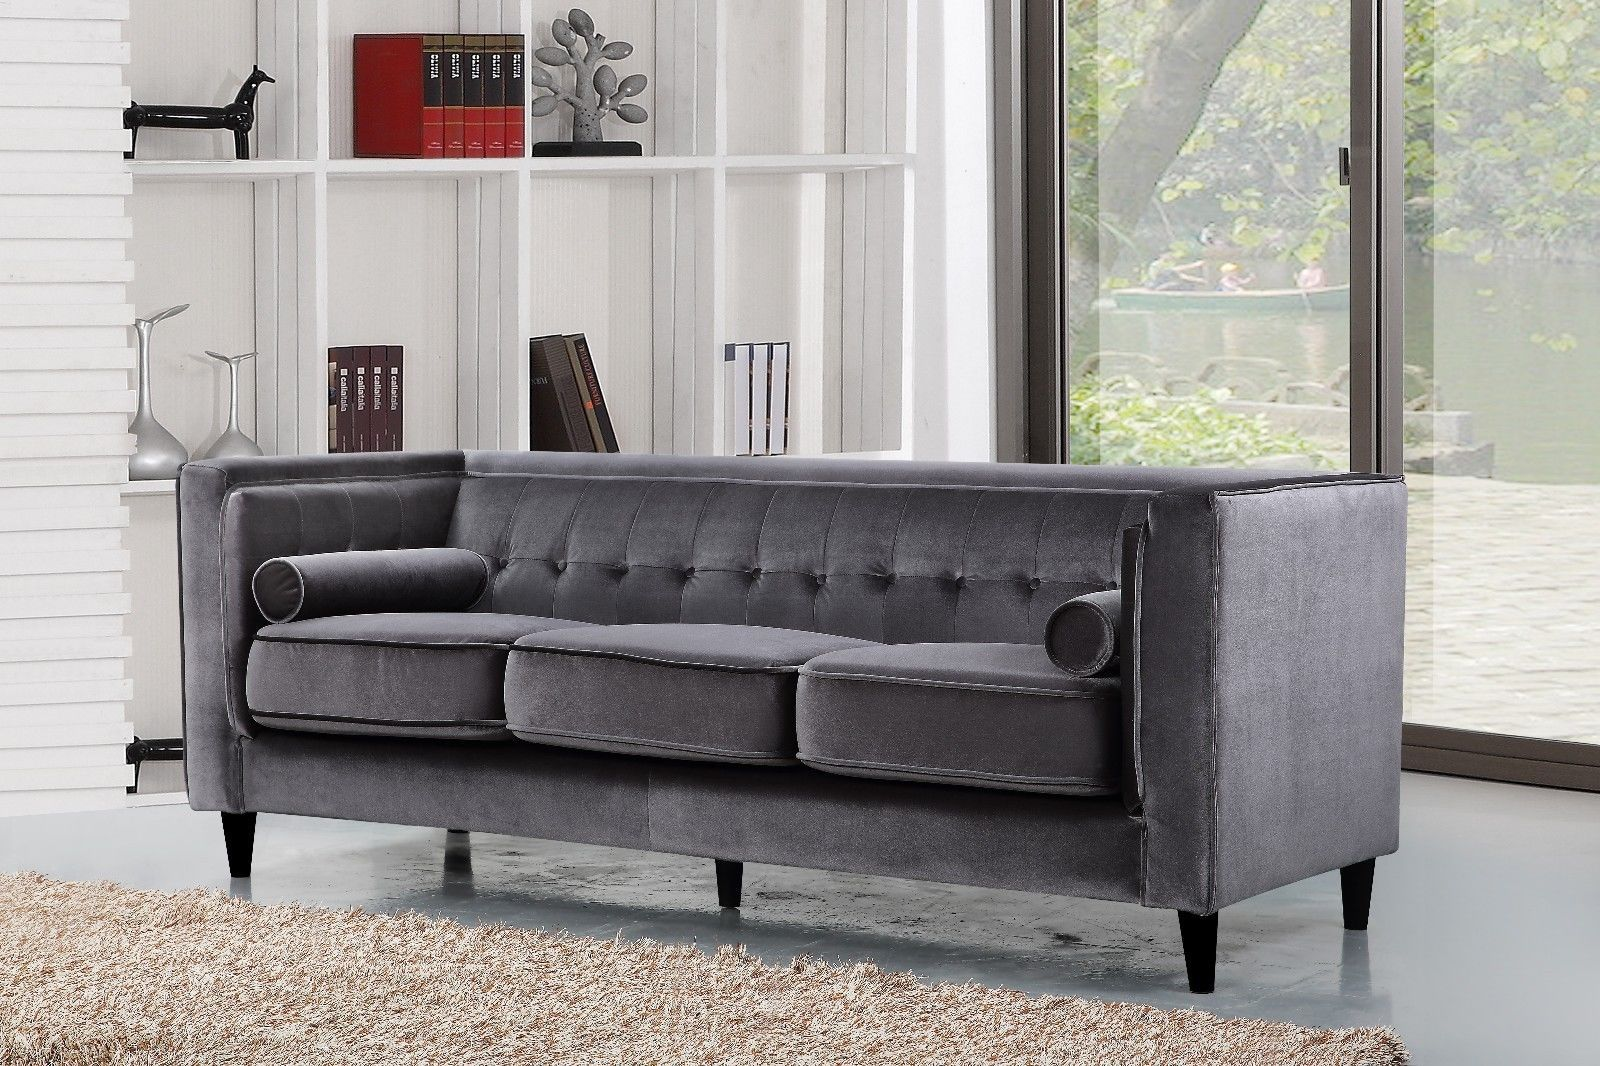 Meridian 642 Taylor Living Room Set 2pcs in Grey Velvet Contemporary Style